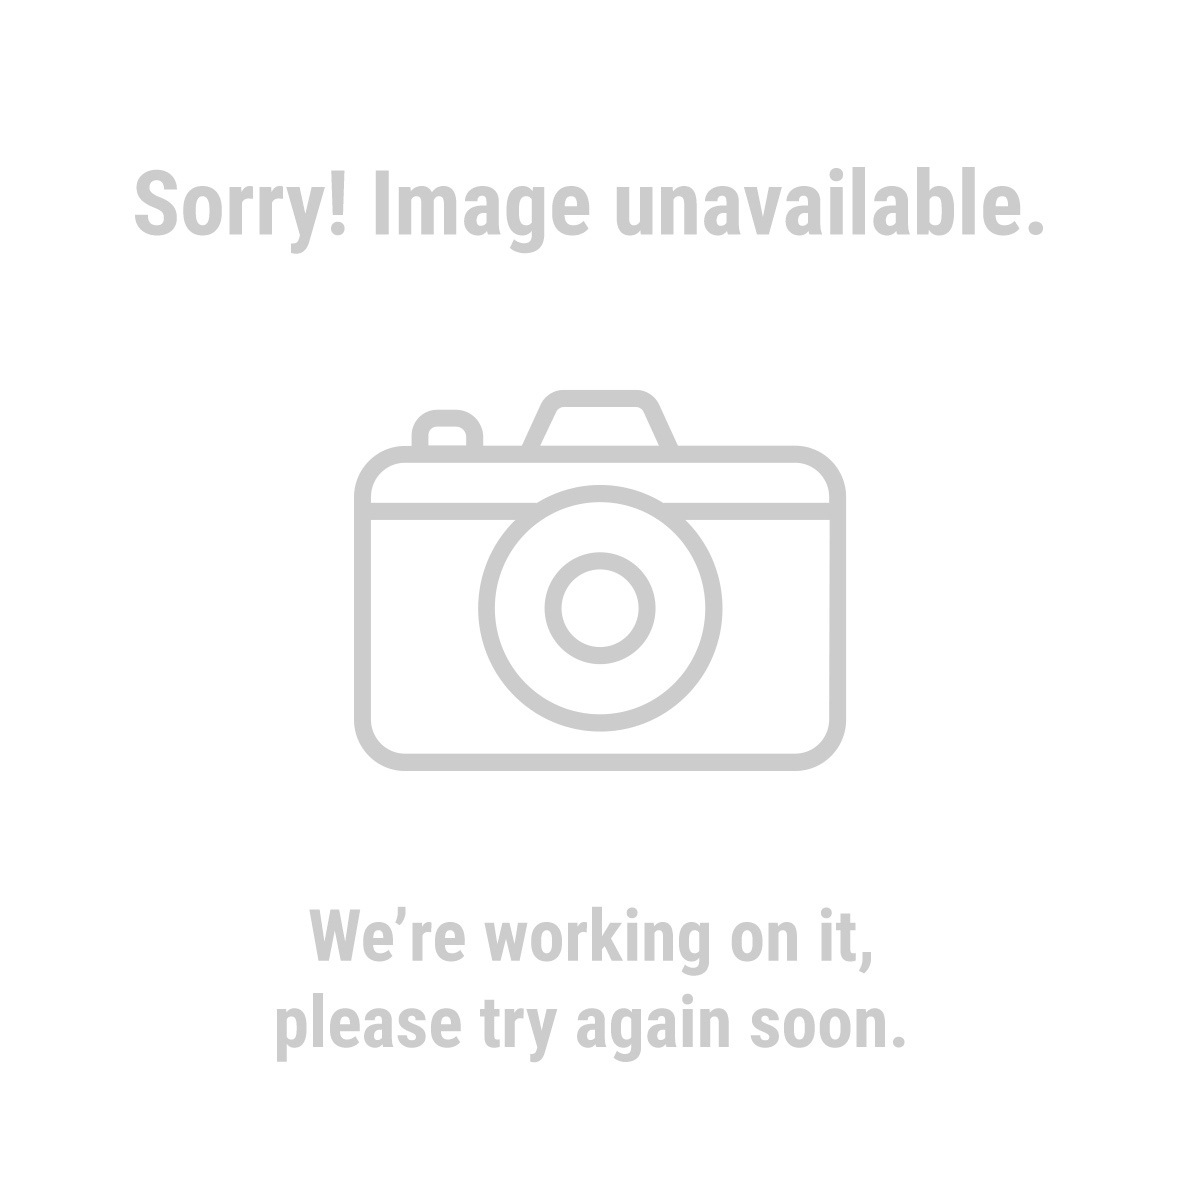 HFT® 63237 1/2 In. Grommet Installation Kit 104 Pc